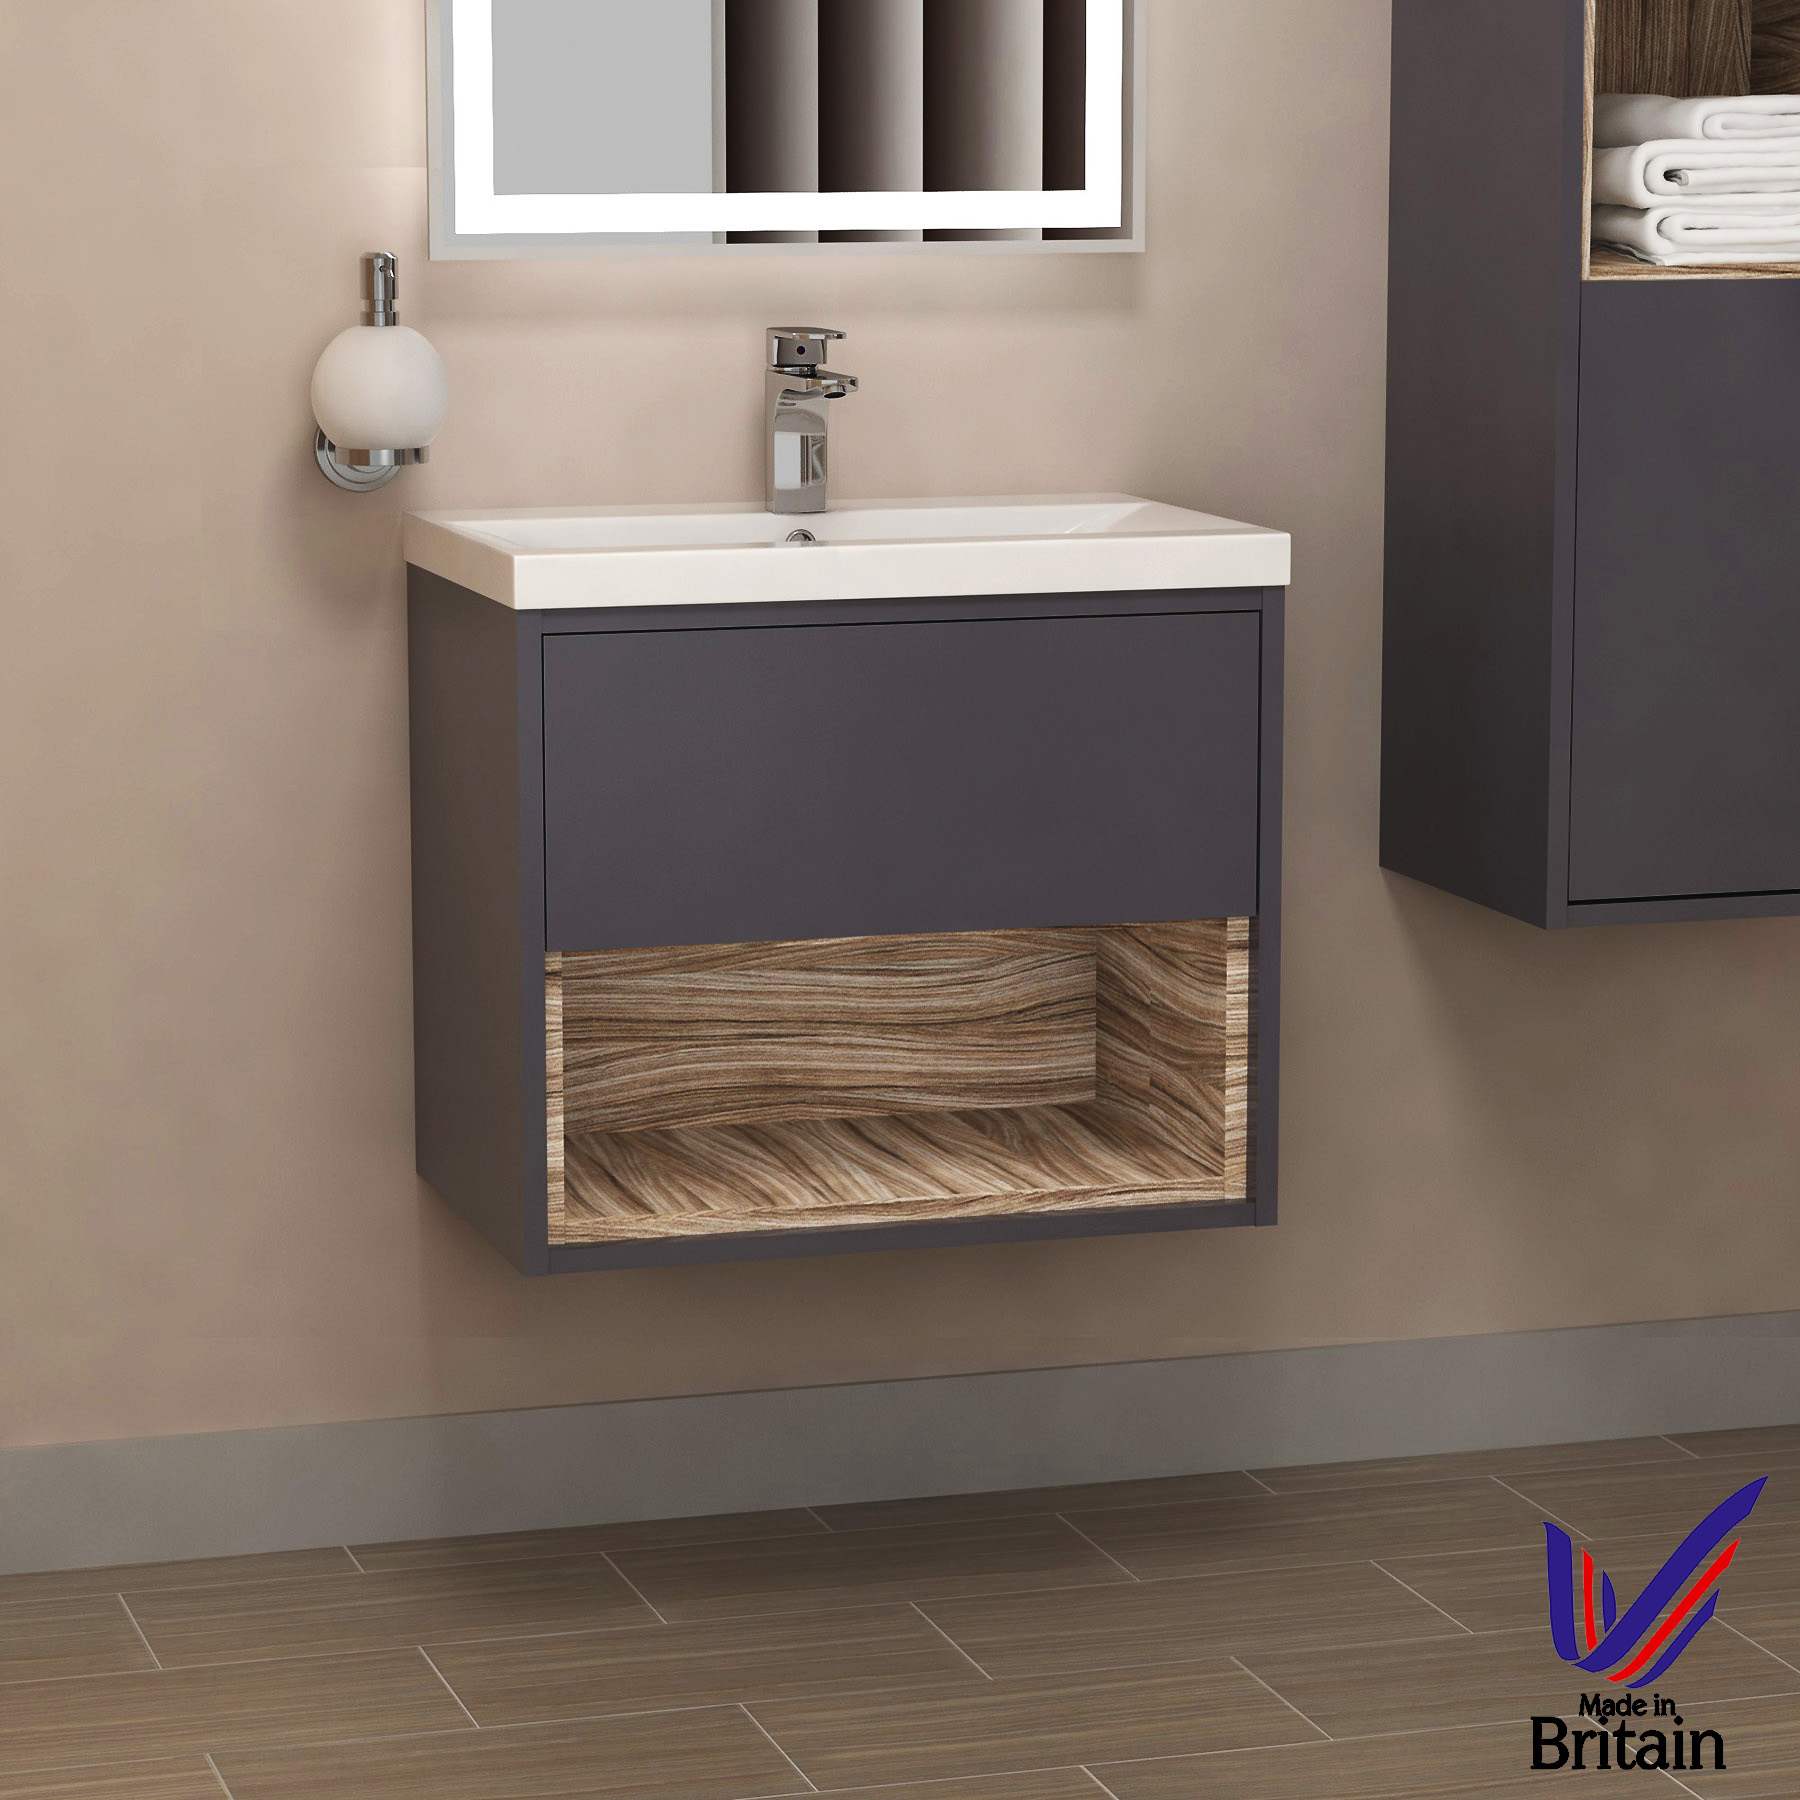 sale retailer 3128b cbc84 Details about 500mm Wall Hung Vanity Unit 1-Drawer Bathroom Cabinet Basin  Sink - Gloss Grey